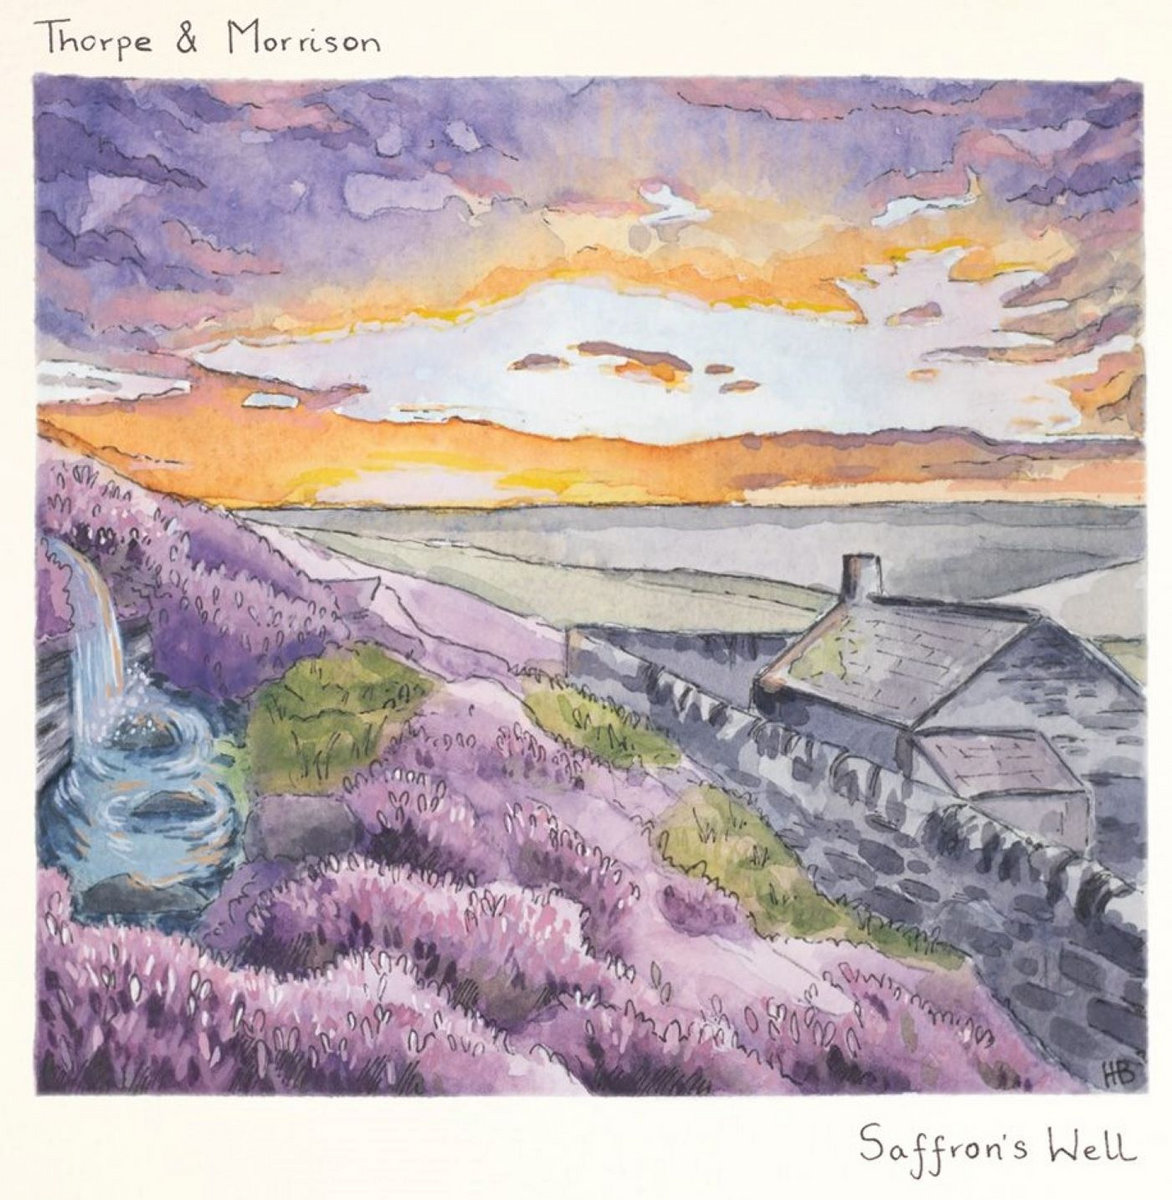 RBC-based Anglo-Scottish folk instrumental duo Thorpe & Morrison have just released a wonderful album of fiddle and guitar tunes called Saffrons Well.  It's now available via Bandcamp.  https://t.co/cmd6o21HX2 https://t.co/NB1Zjt4ofc